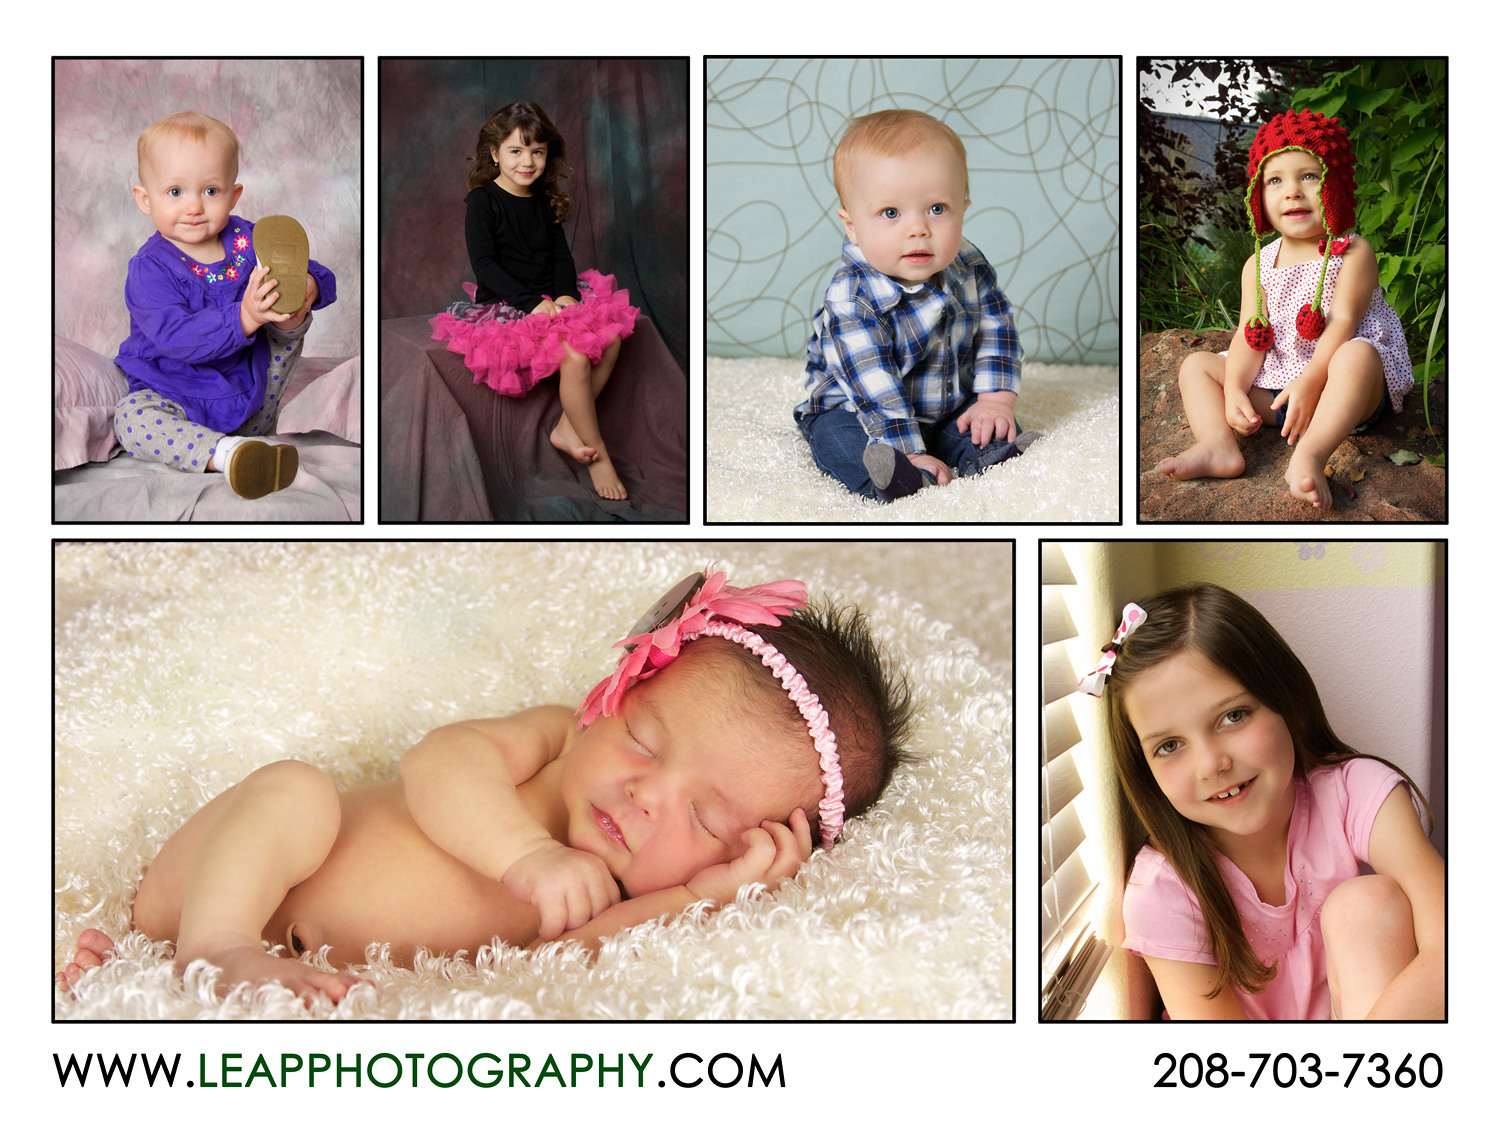 Children's portraits, studio, home portraiture and outdoor portraits in Boise Idaho